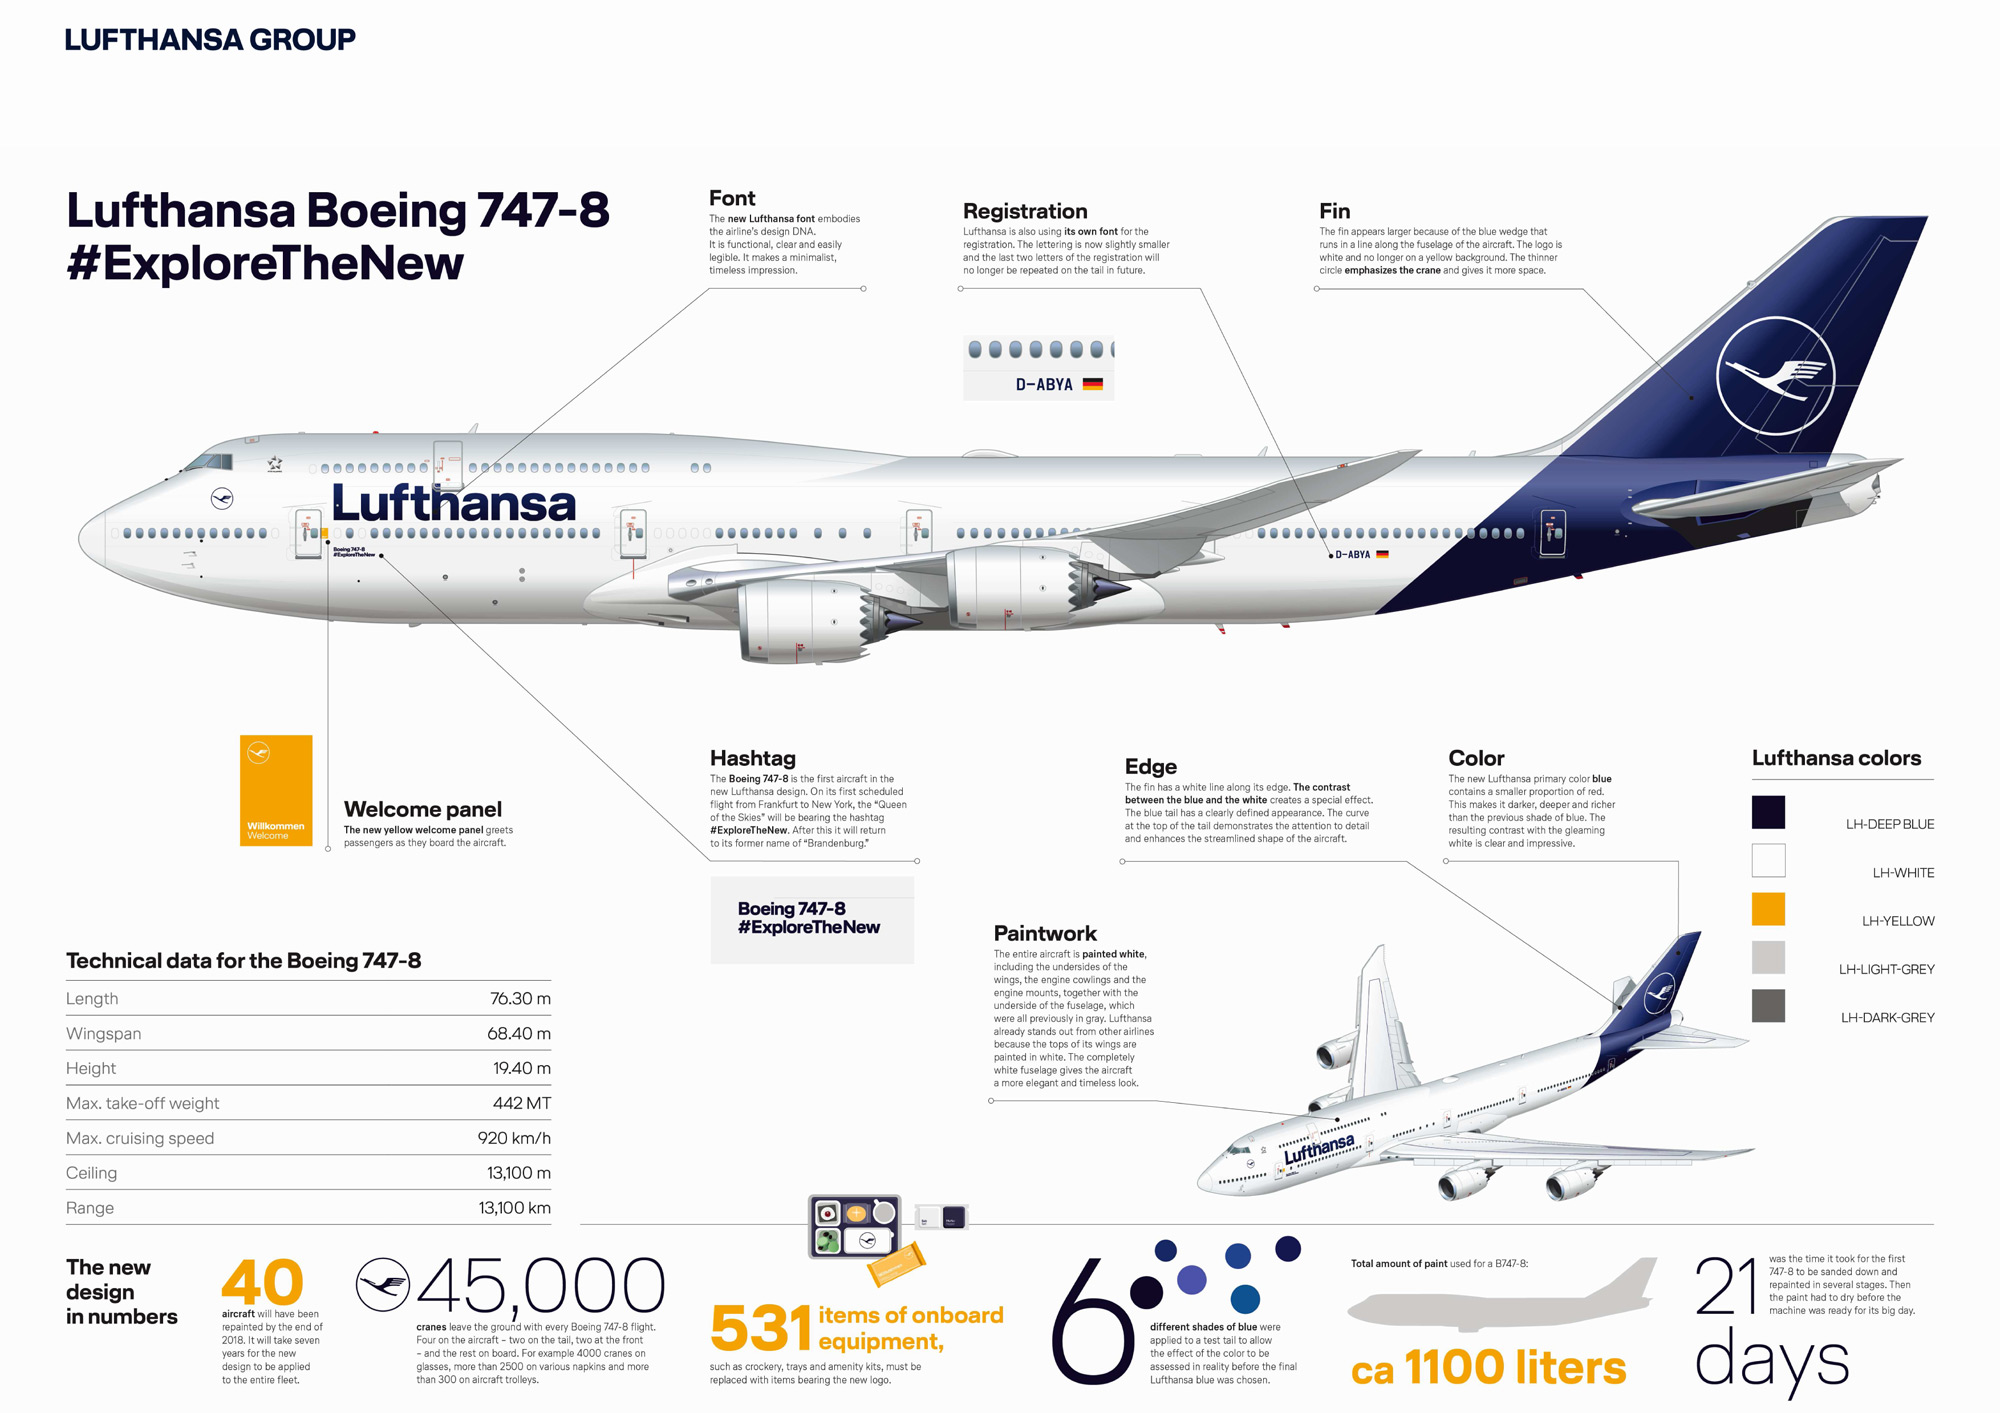 Lufthansa Explanation of Livery Design